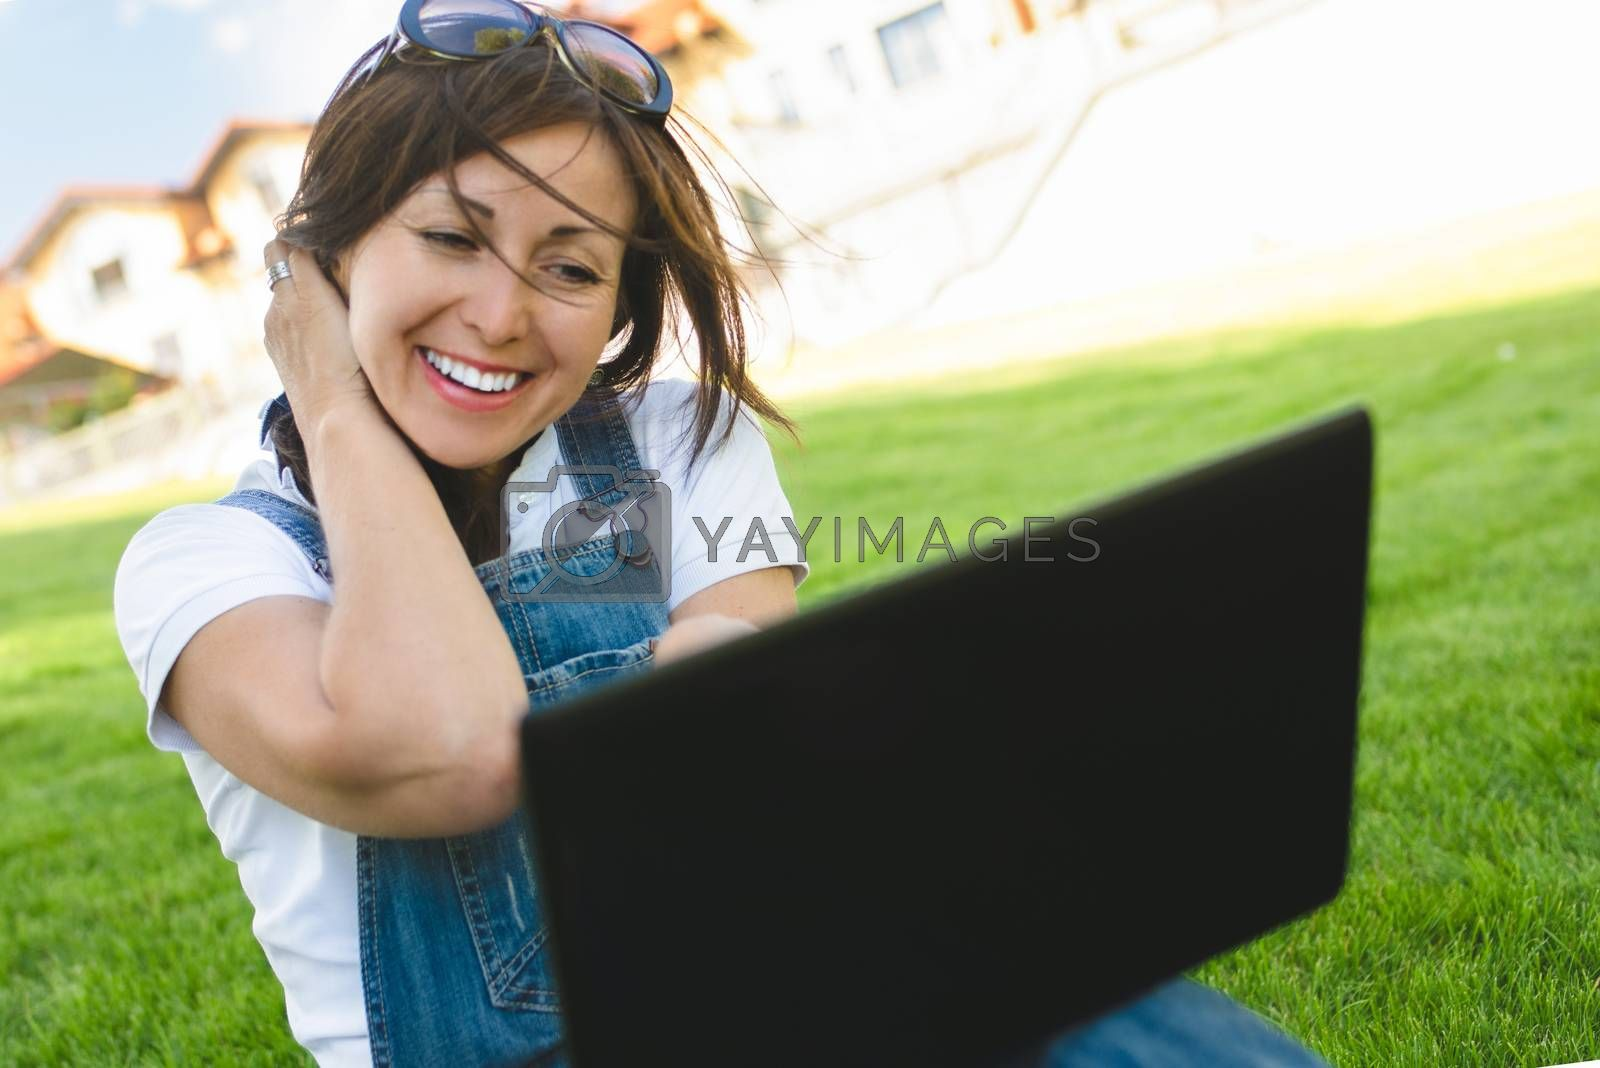 Female gets joyful emotions by talking to her friends on a conference call from notebook ,she dressed in jeans overalls sitting on grass in the park